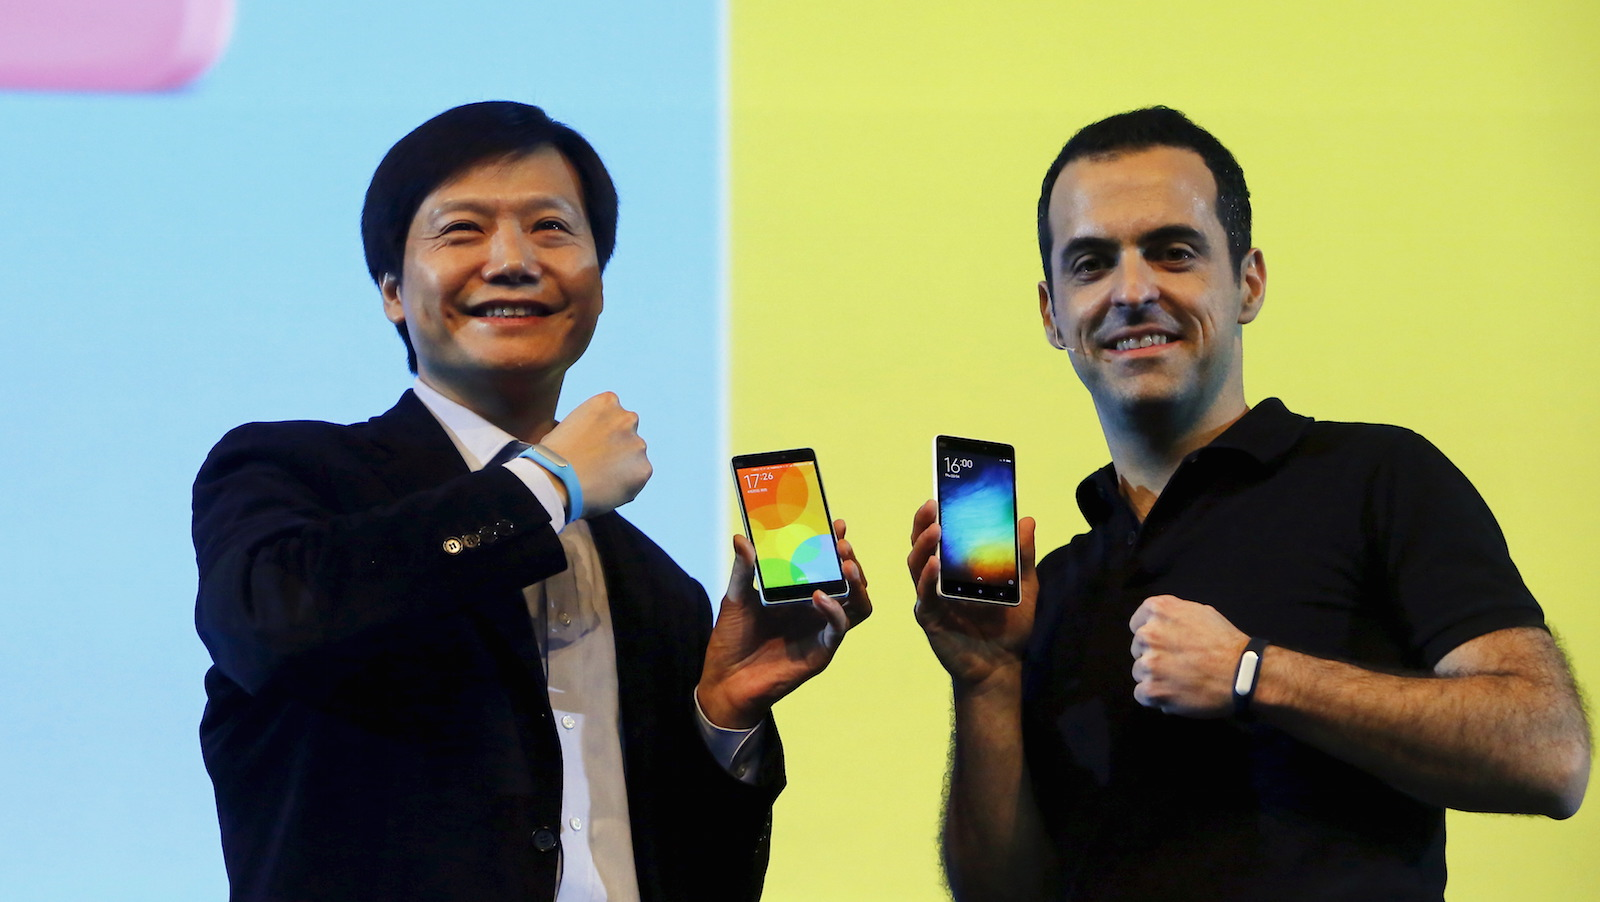 Lei Jun (L), founder and chief executive officer of Xiaomi, and Hugo Barra, Xiaomi's vice president of international operations, display Mi 4i phones during its launch in New Delhi April 23, 2015. Xiaomi Technology - the fast-growing No.3 global smartphone maker valued at $45 billion after a December funding round - hosted its first global launch outside of China in New Delhi on Thursday, unveiling its feature-heavy Mi 4i model that supports six Indian languages at 12,999 rupees ($205).